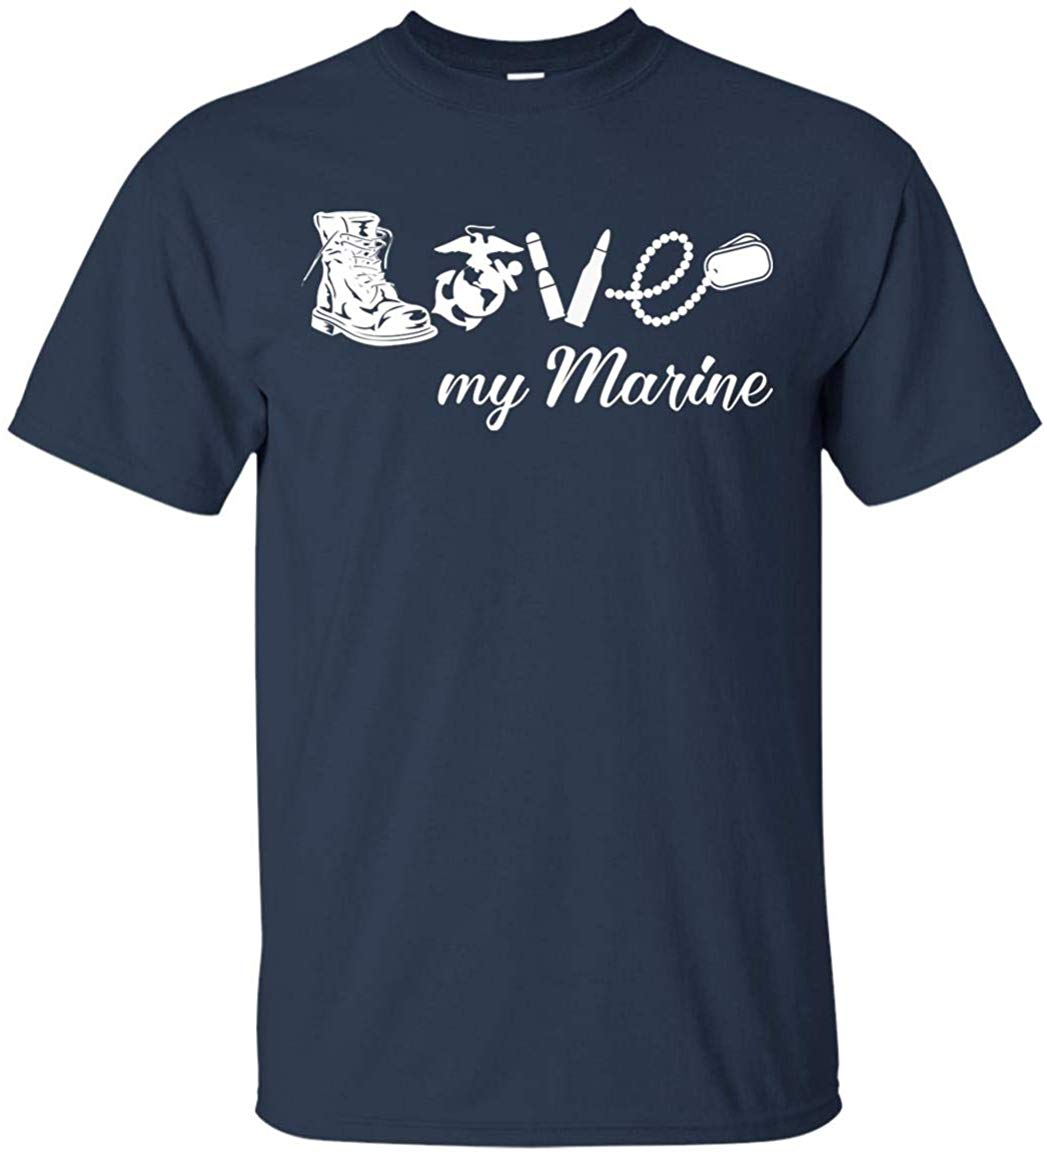 <font><b>USMC</b></font> Marine Corps <font><b>T</b></font> <font><b>Shirt</b></font> Men Women Love My Marine TEE <font><b>Shirt</b></font> Loose Size Top Ajax 100% Cotton <font><b>T</b></font>-<font><b>shirt</b></font> image